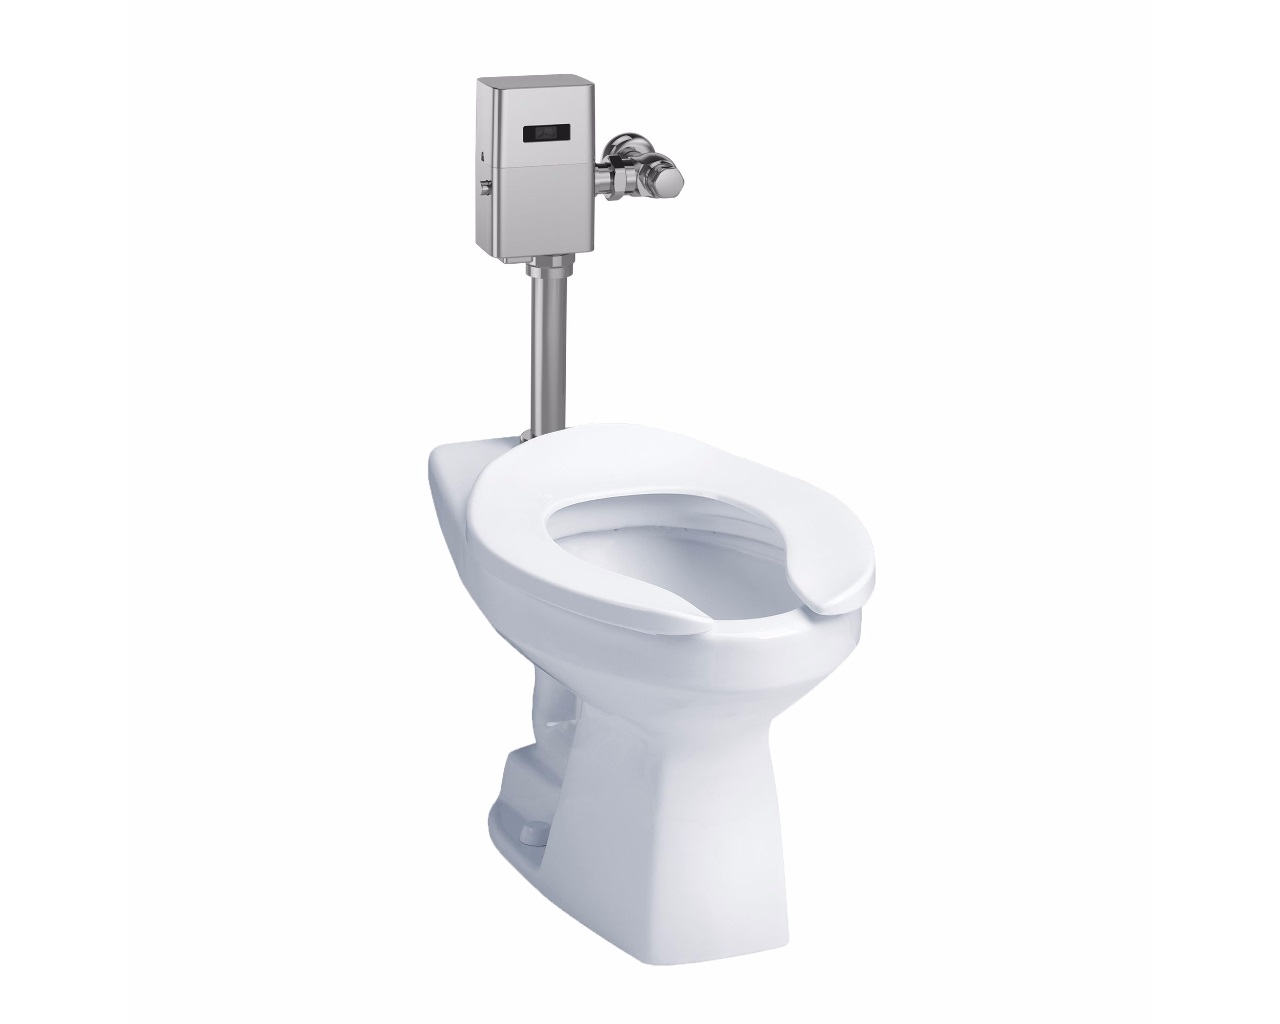 Commercial 1G Flushometer High Efficiency Toilet, ADA Compliant ...